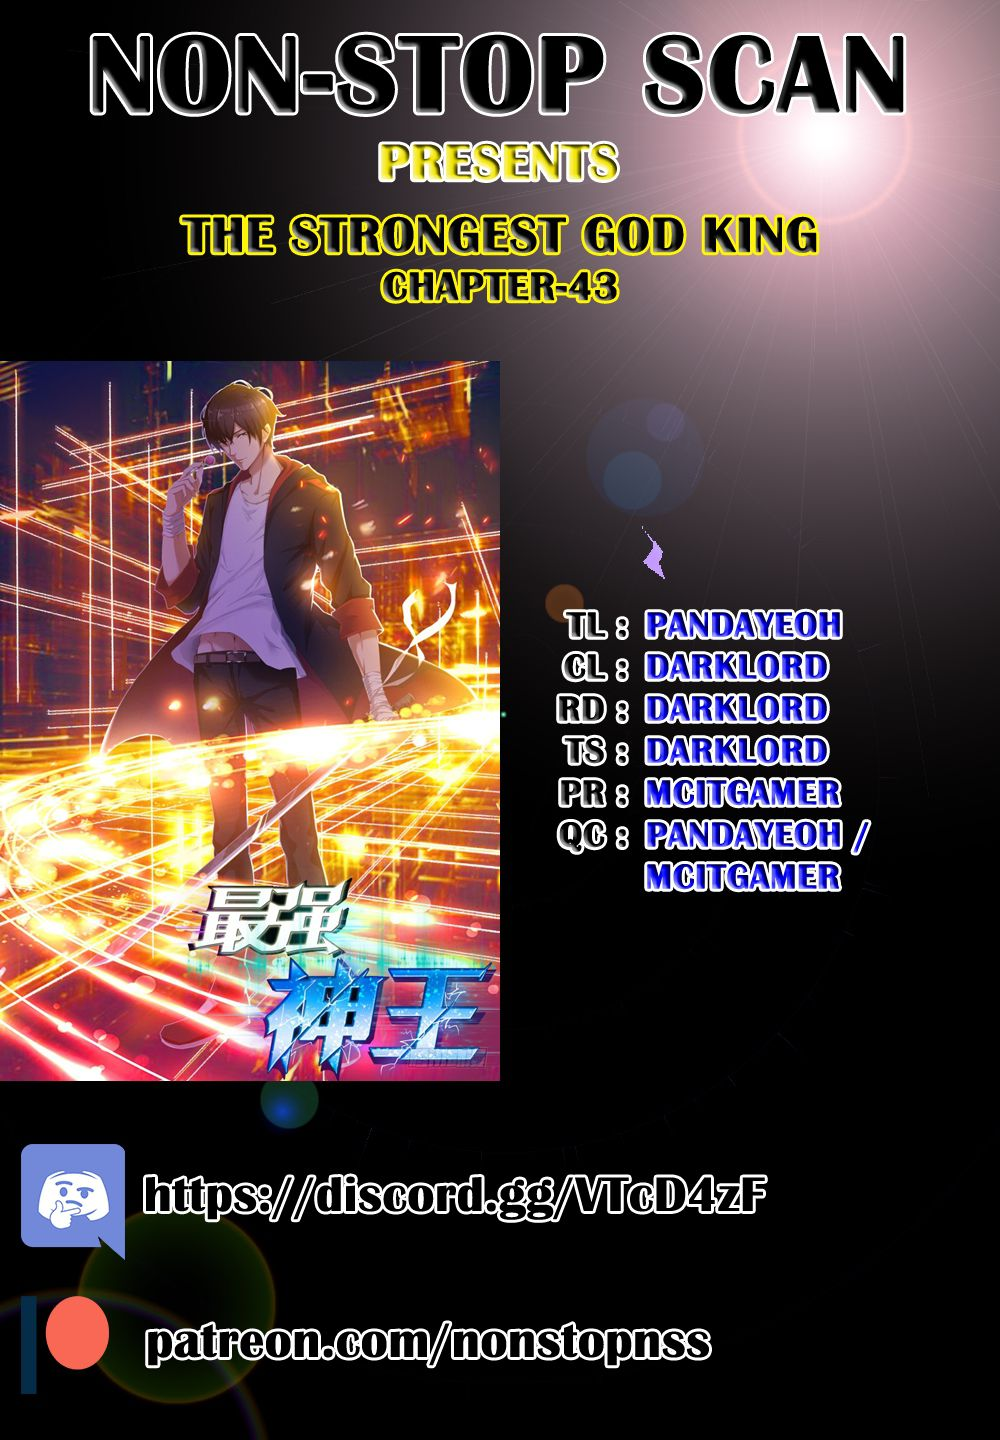 TheStrongestGodKing- Chapter 43